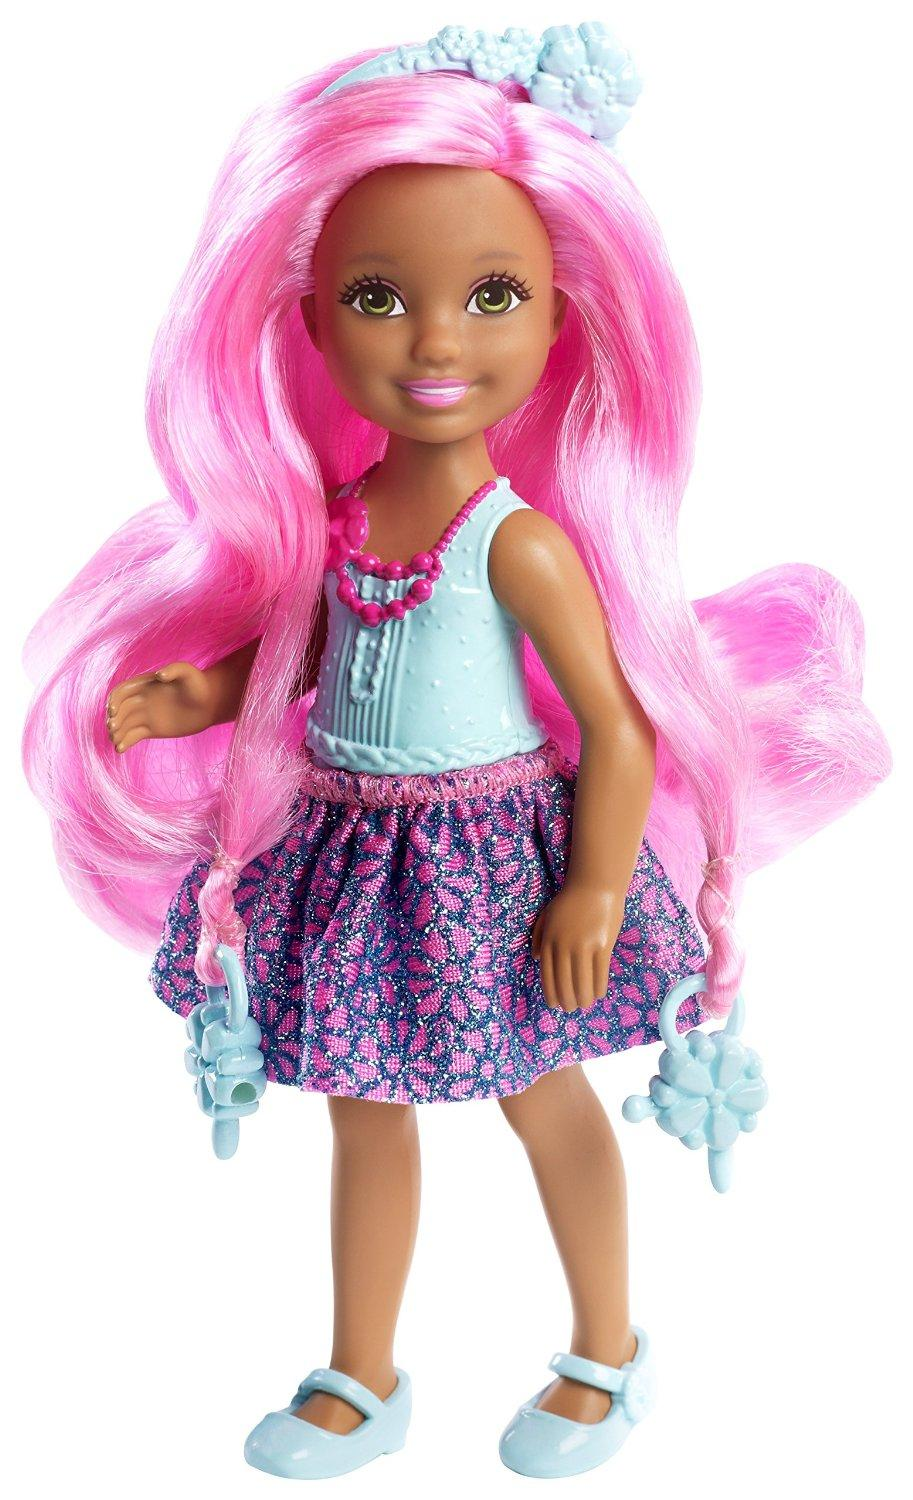 Toys For Hair : Amazon barbie endless hair kingdom chelsea doll blue